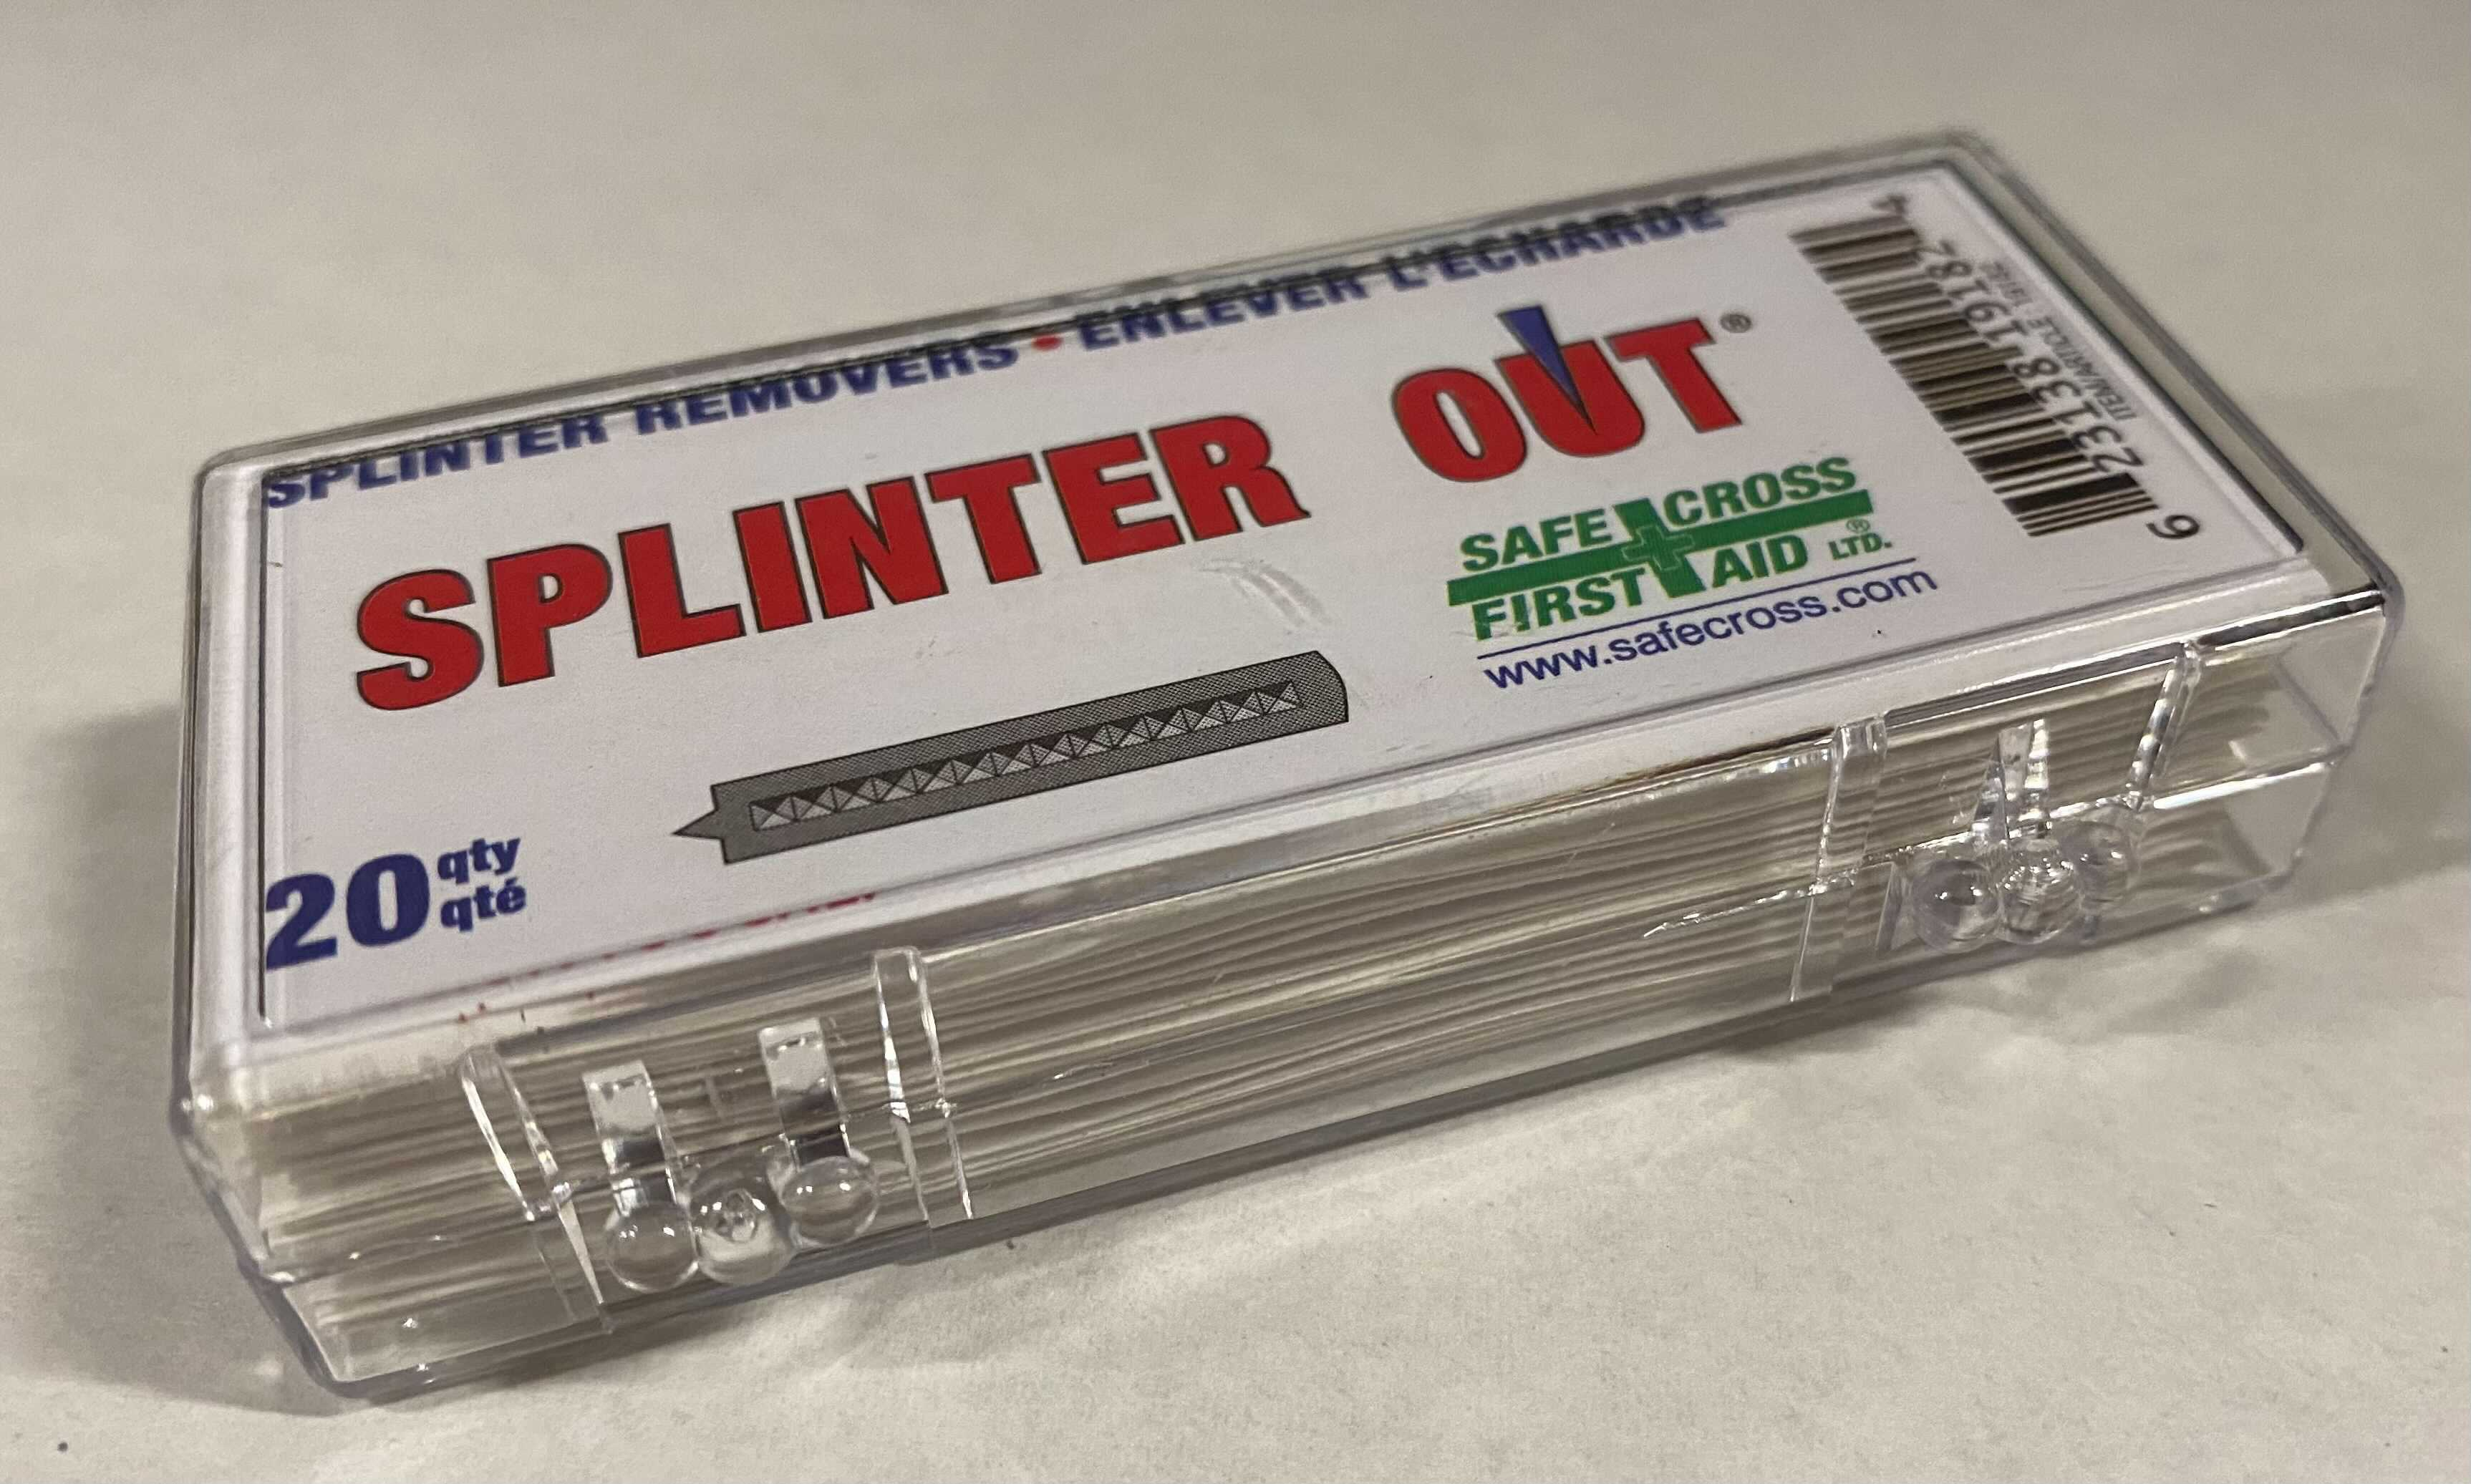 Splinter-Out (Box of 20) image